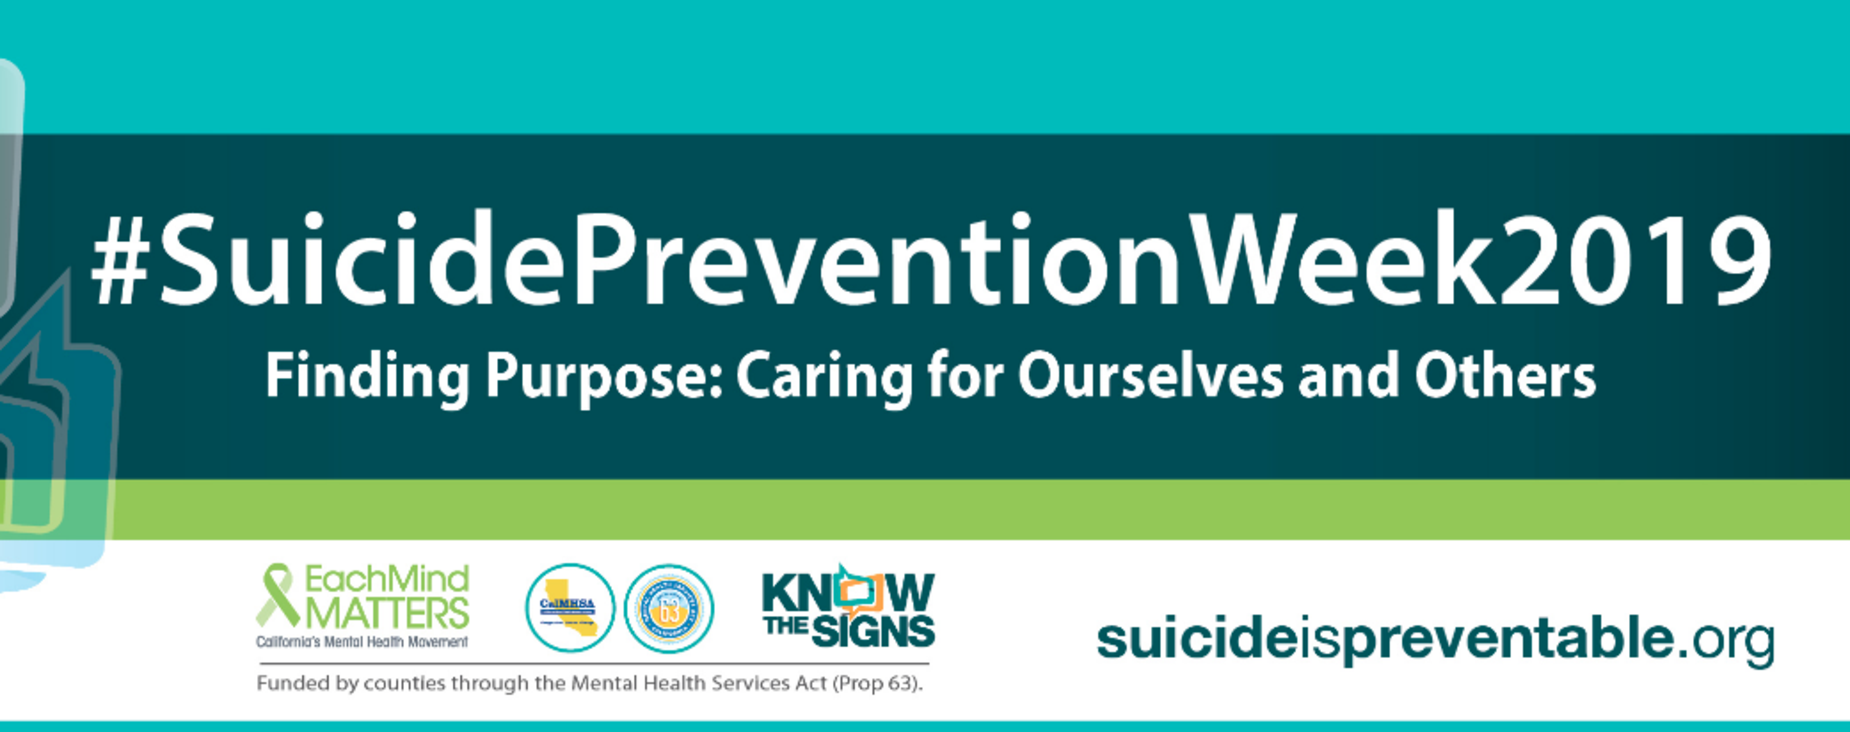 Suicide Prevention Week 2019 graphic